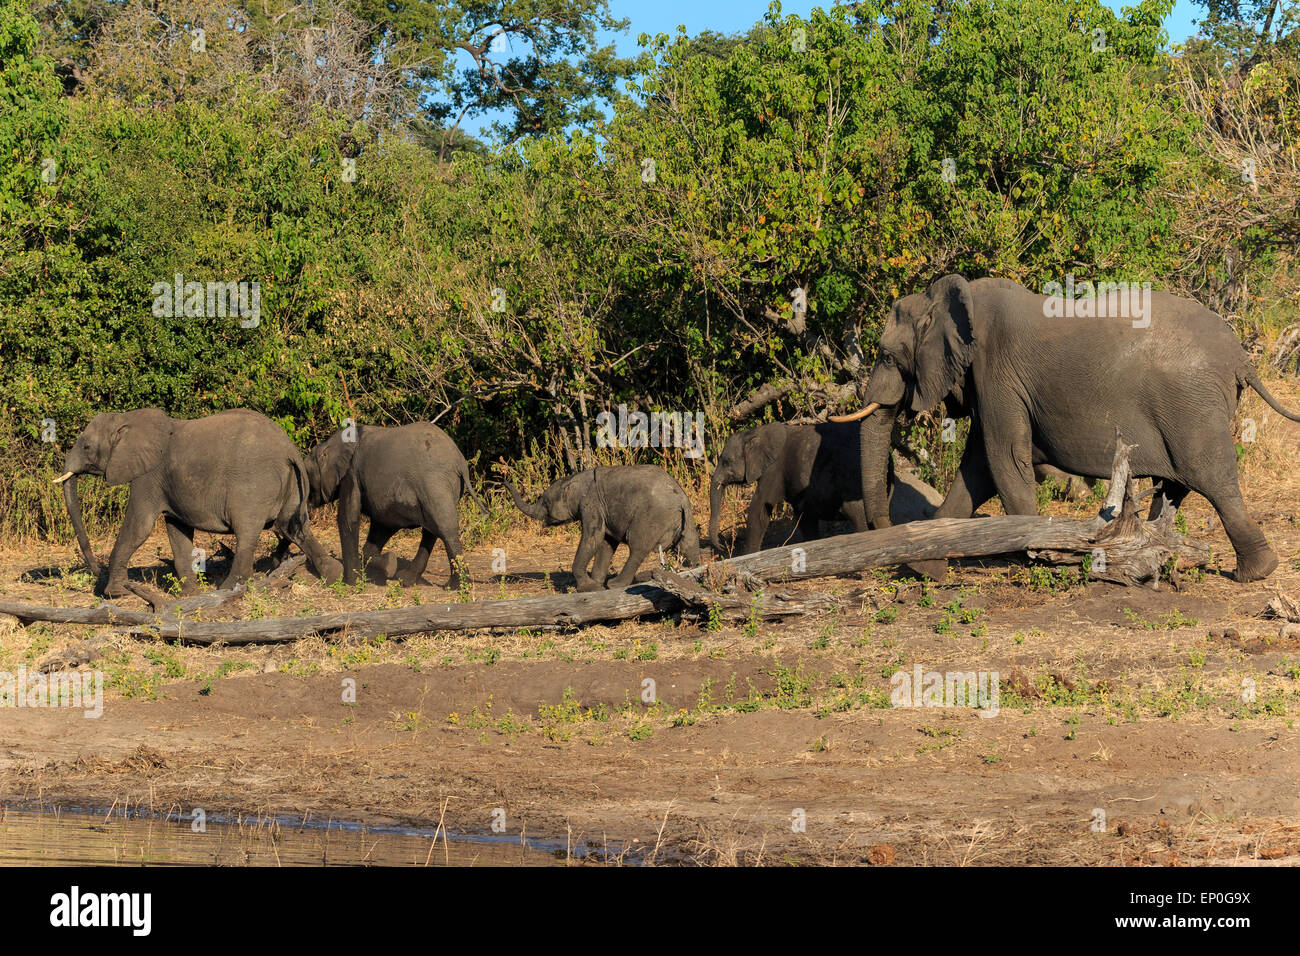 Group and baby elephant drinking river Chobe, Botswana, Africa. Safari during travel. - Stock Image